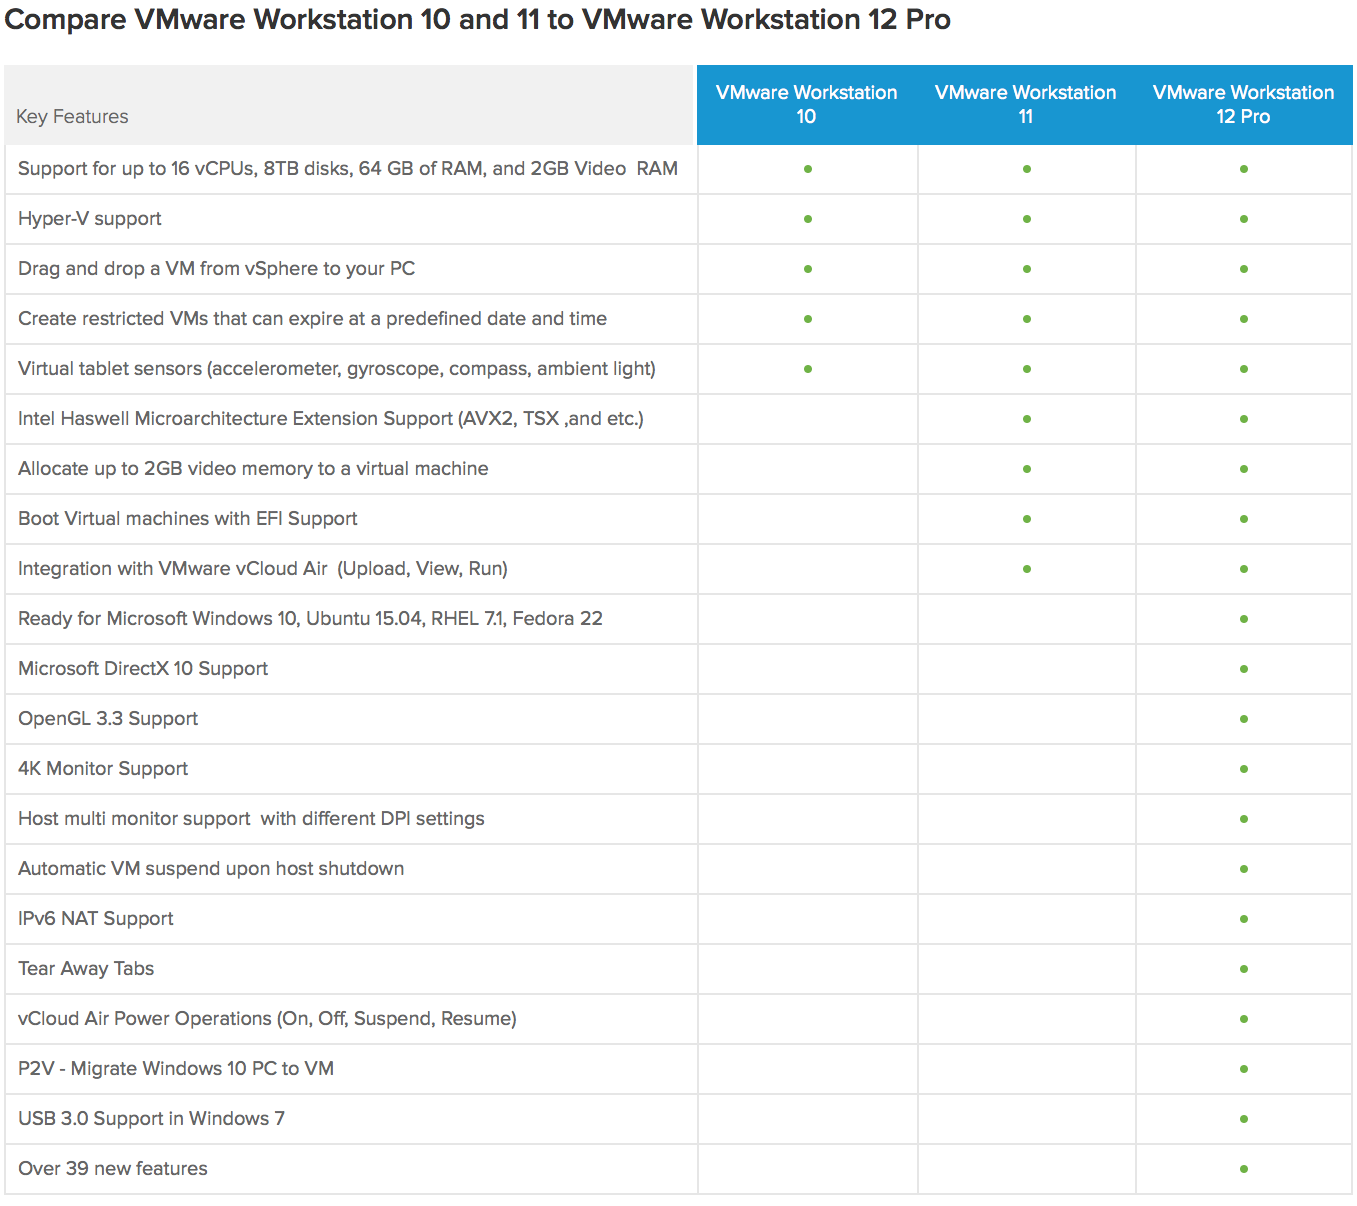 vmware workstation 12 new features